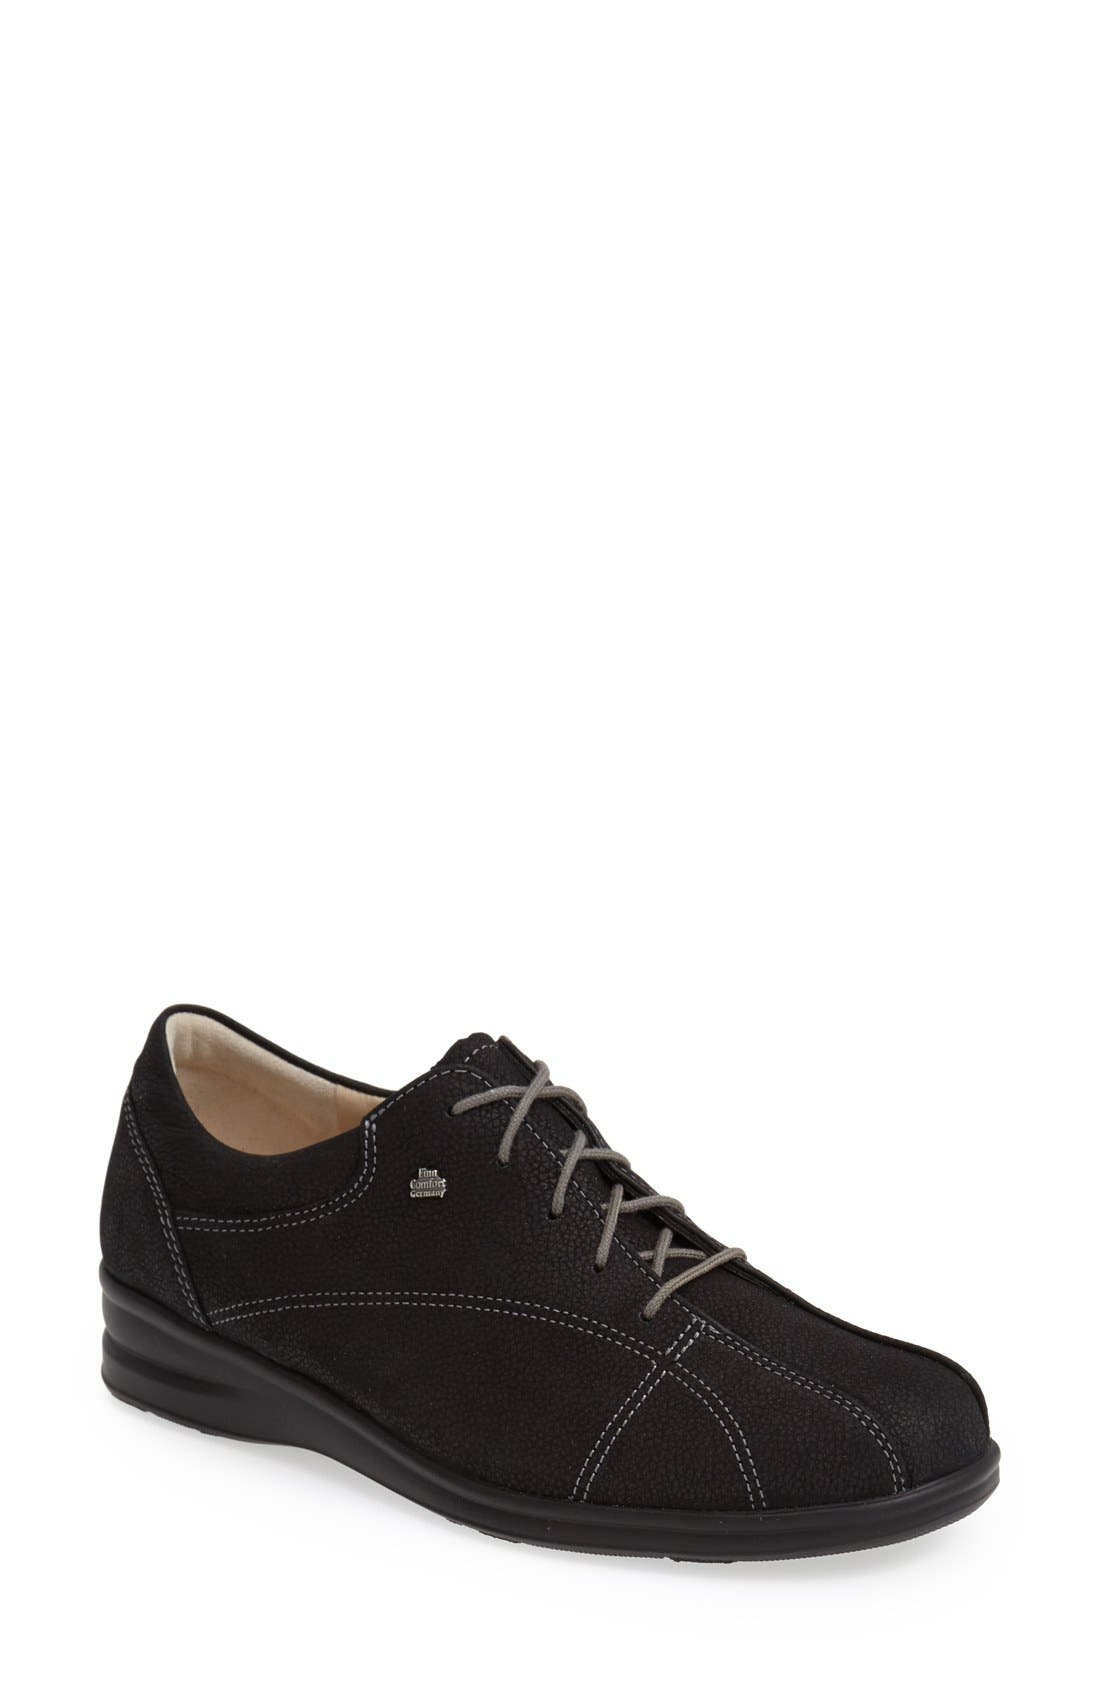 Main Image - Finn Comfort 'Ariano' Leather Sneaker (Women)